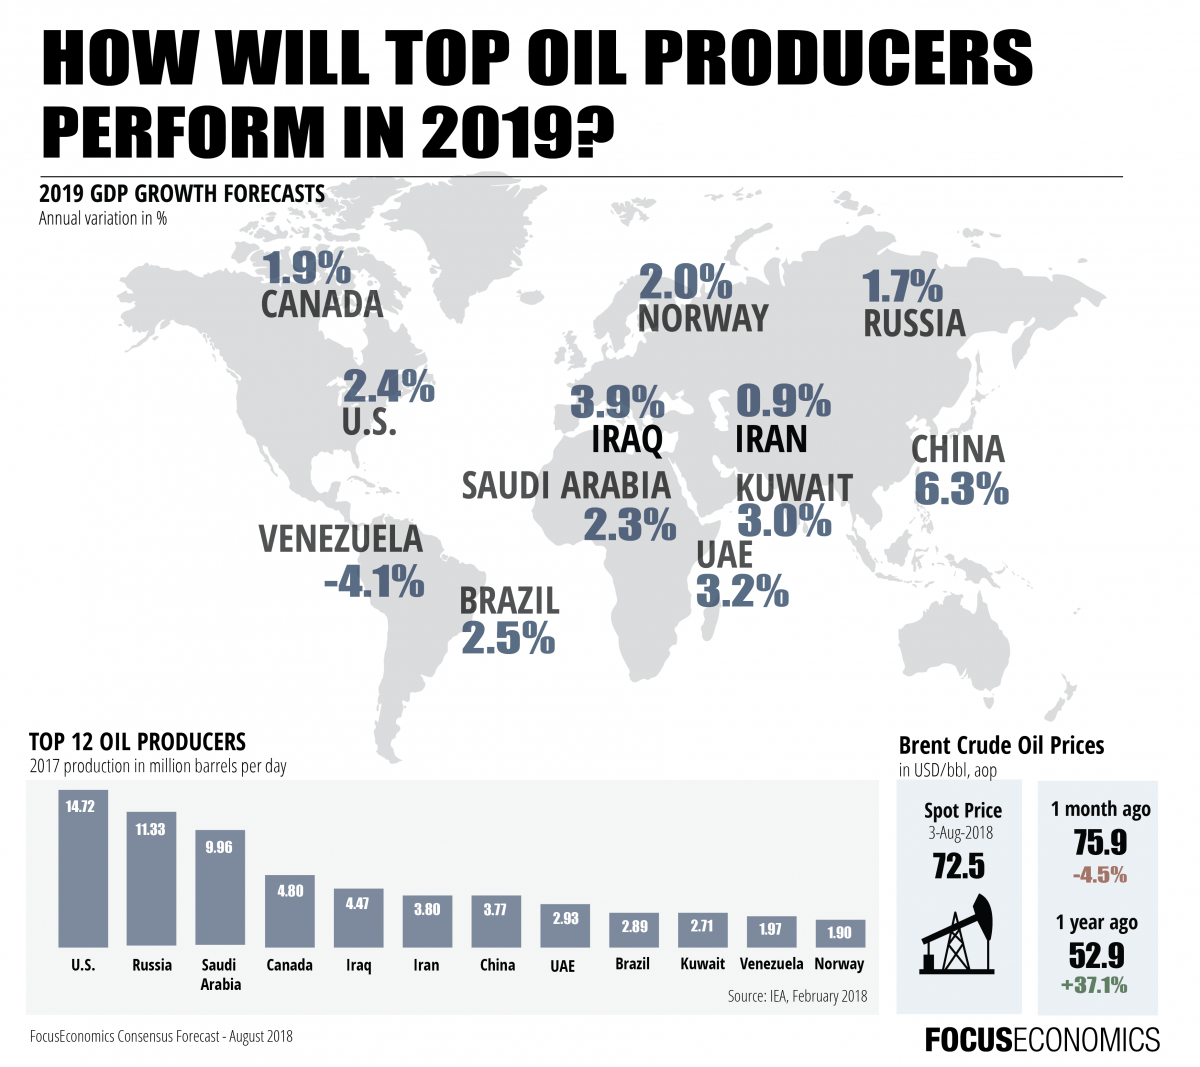 Gdp Growth Forecasts For Top Oil Producers In 2019 Chart